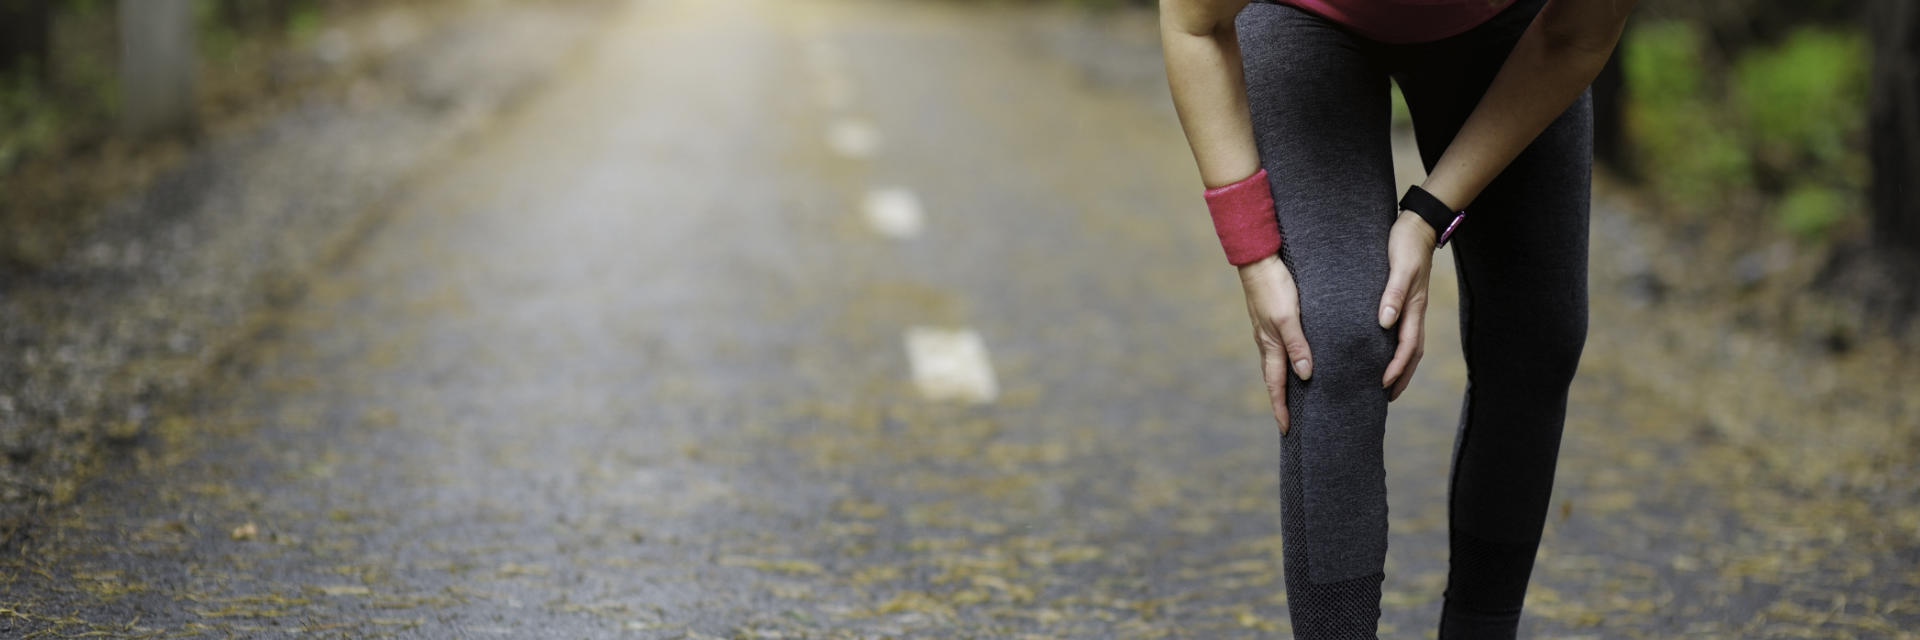 A runner stopped by unexpected knee pain.